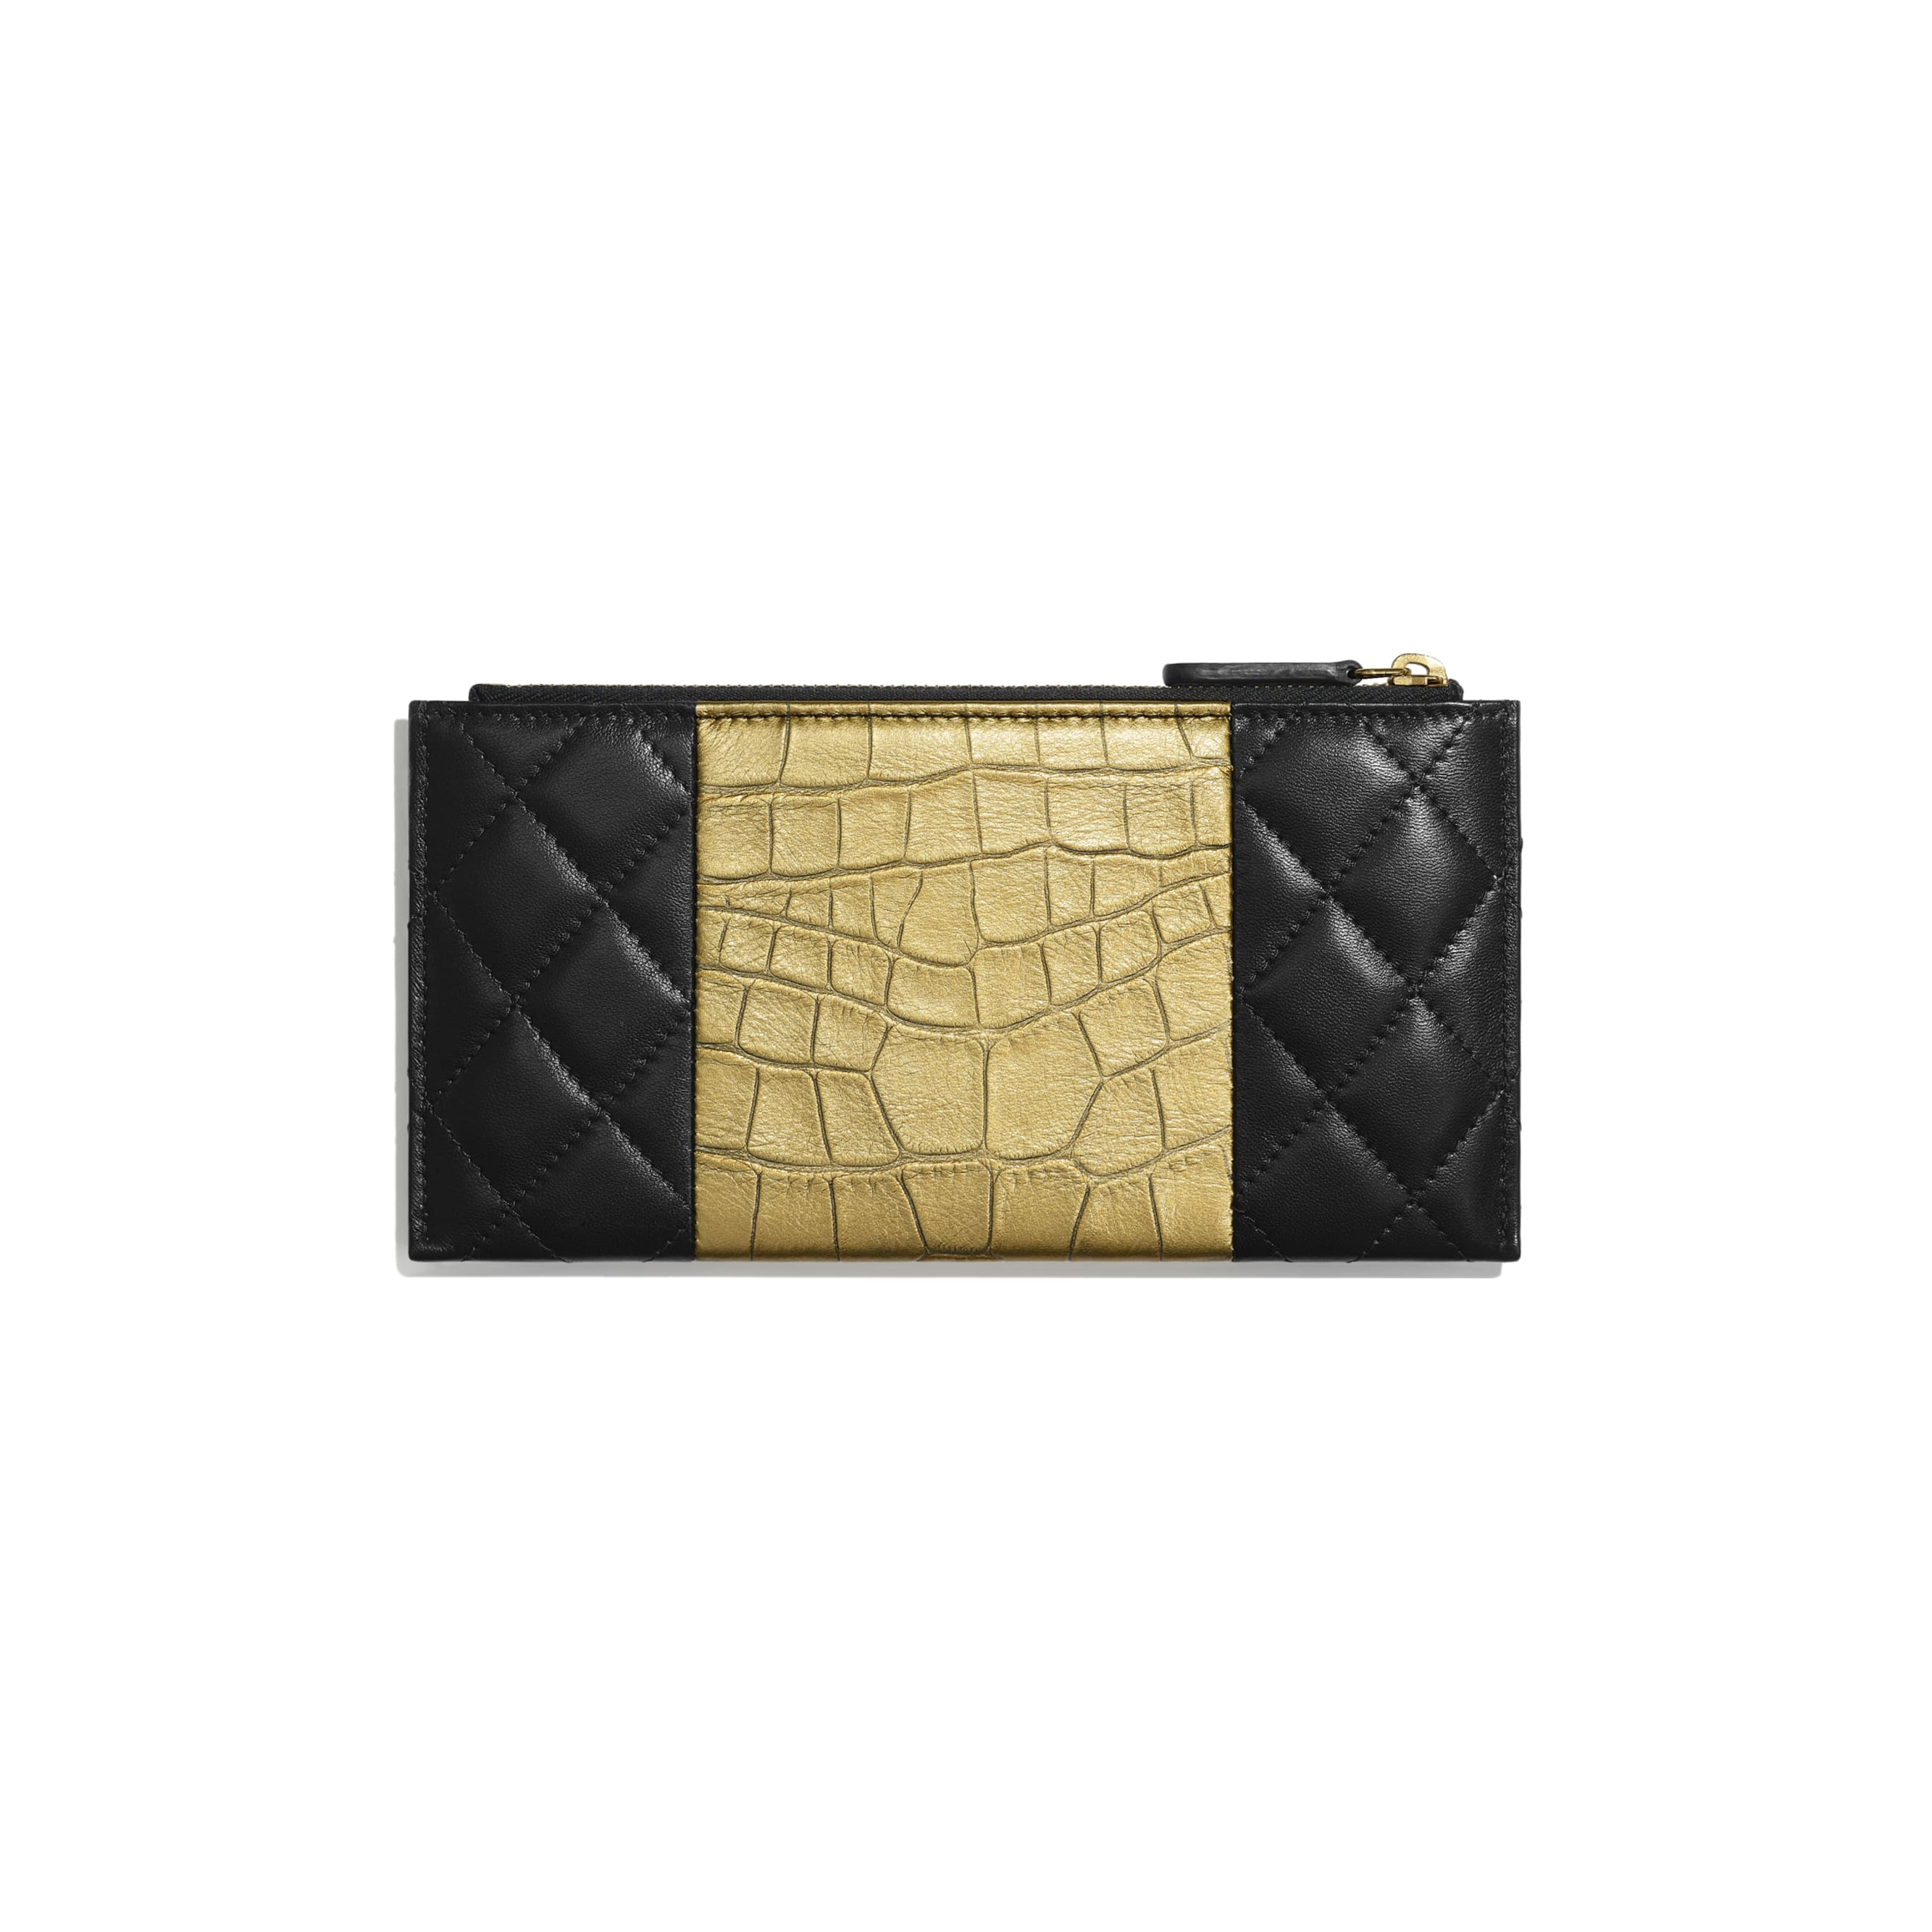 2.55 Pouch - Black & Gold - Lambskin, Crocodile Embossed Calfskin & Gold-Tone Metal - Alternative view - see standard sized version